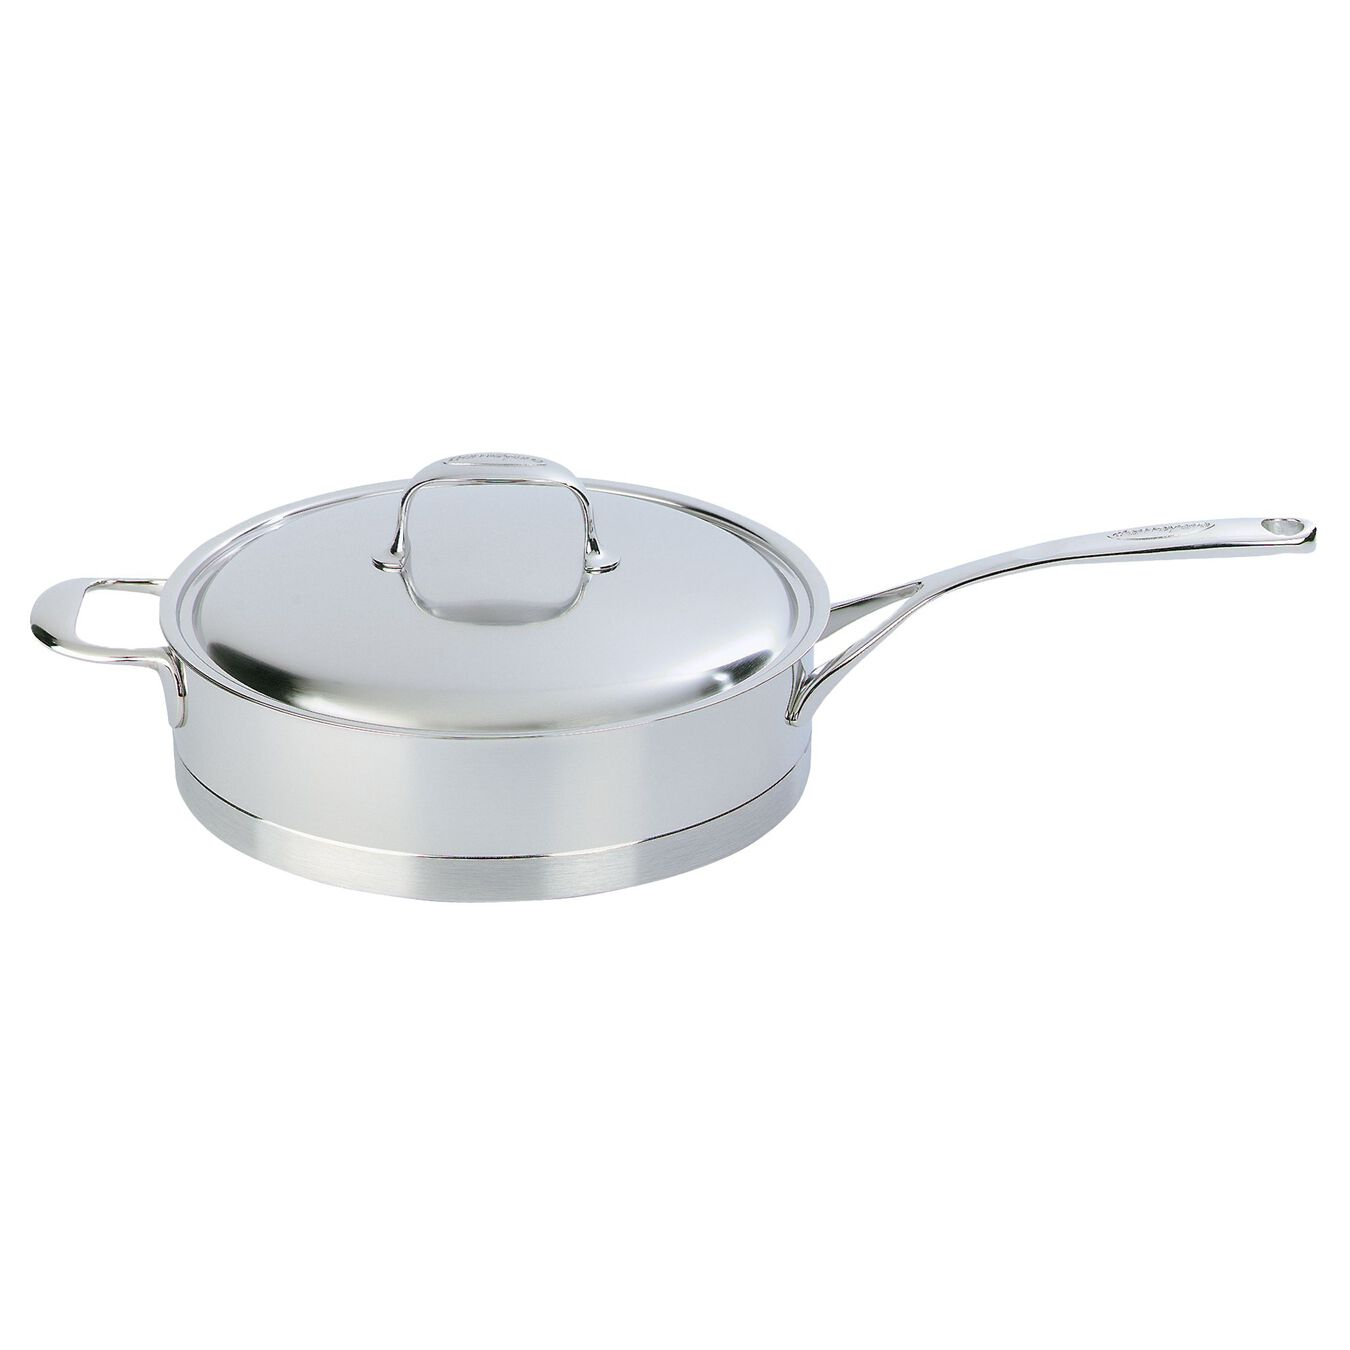 10 Piece 18/10 Stainless Steel 10-Piece Cookware Set,,large 4